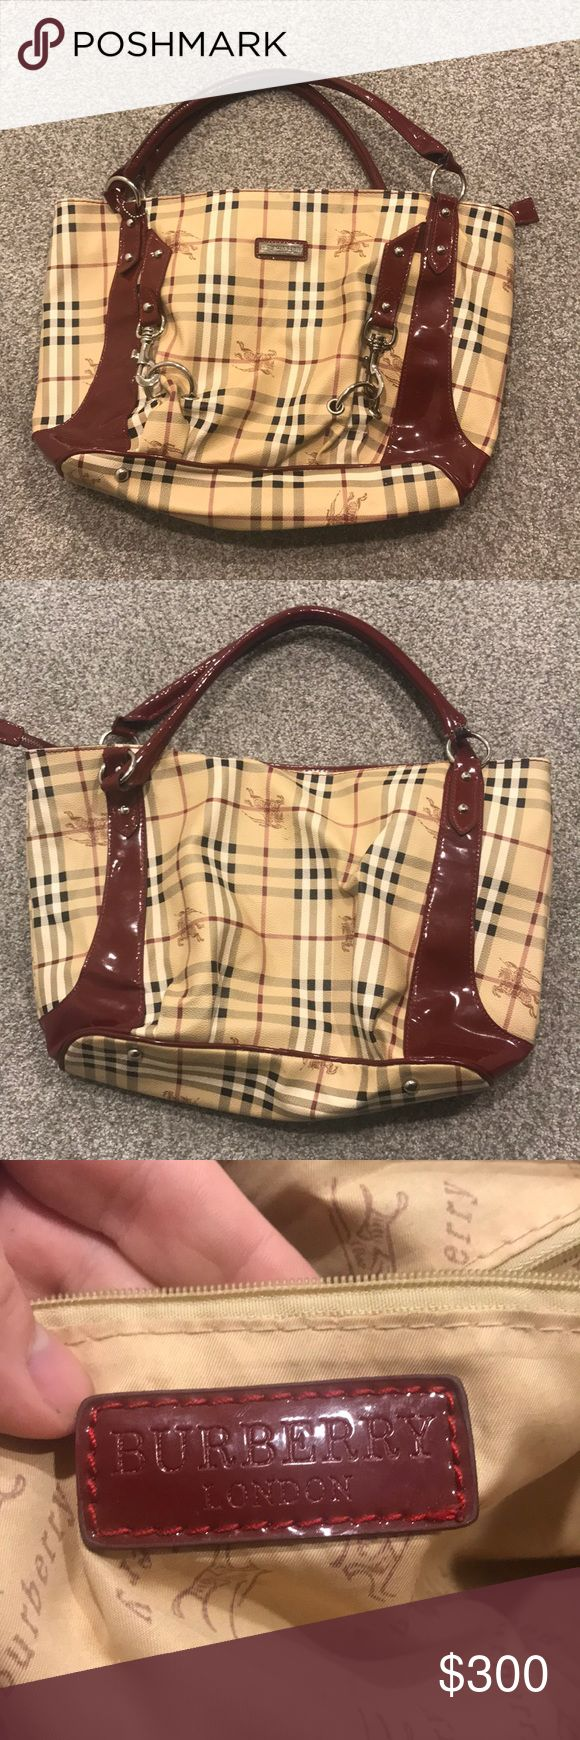 burberry purse this handbag screams luxury, it is so sturdy and well made! burberry is thick and made to last long! going for a great price! Burberry Bags Shoulder Bags